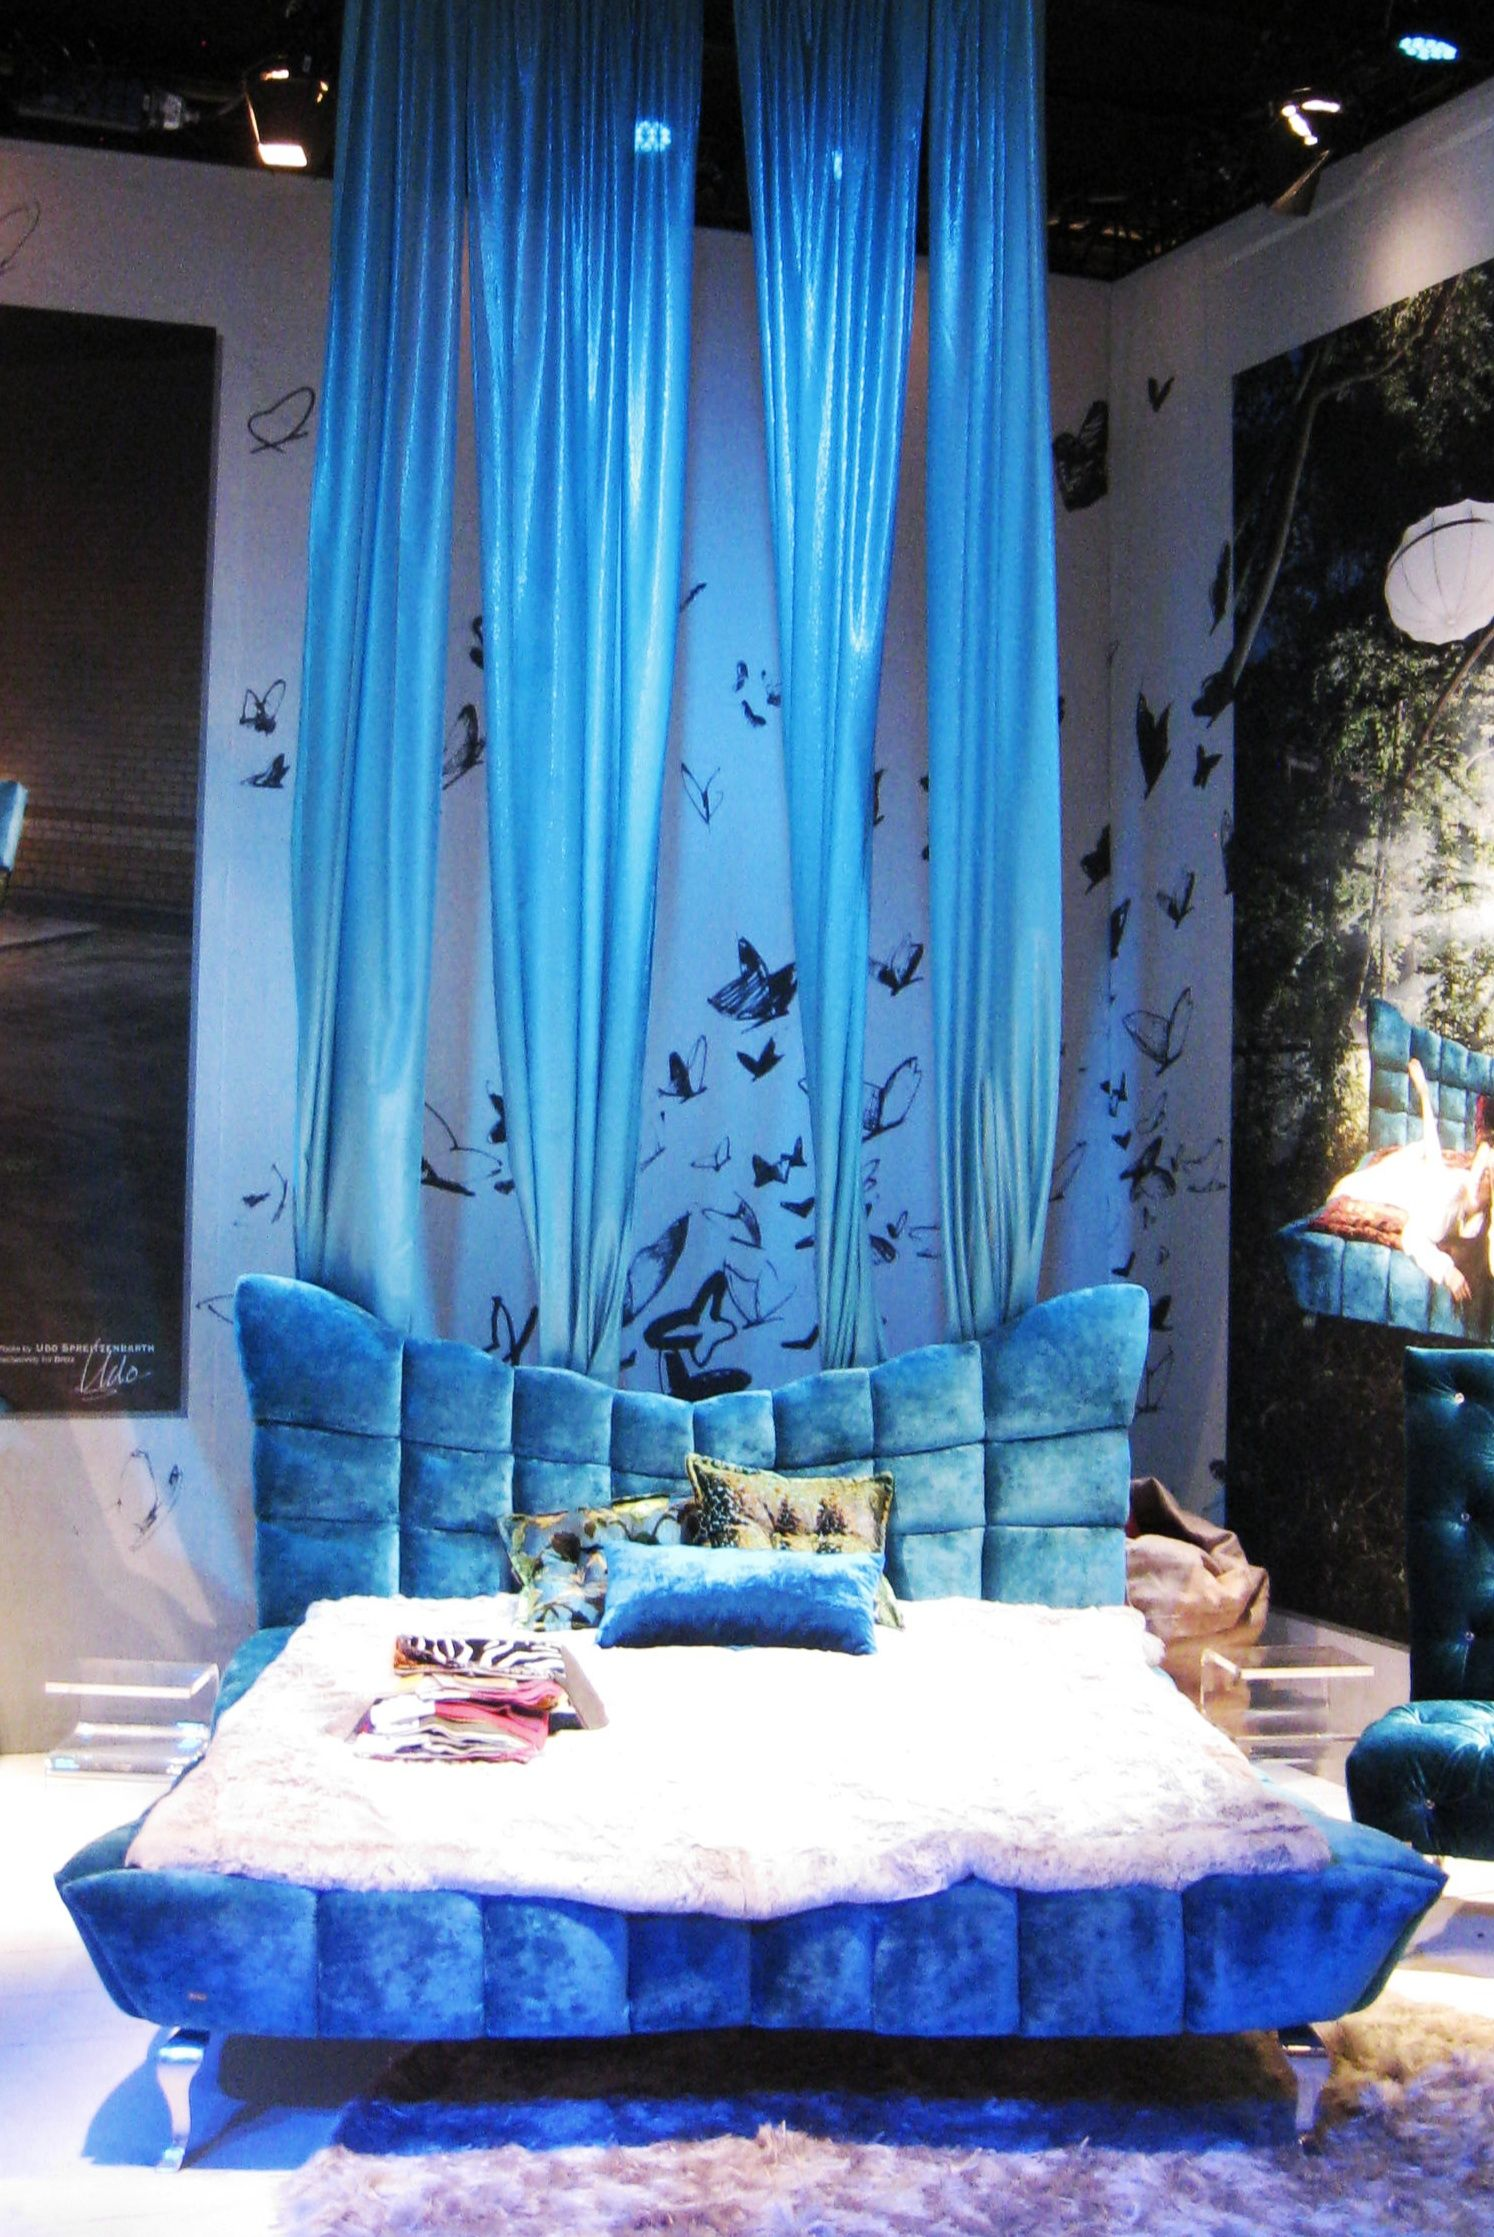 What Do You Think Of This Bed It Reminds Me Of The Little Mermaid